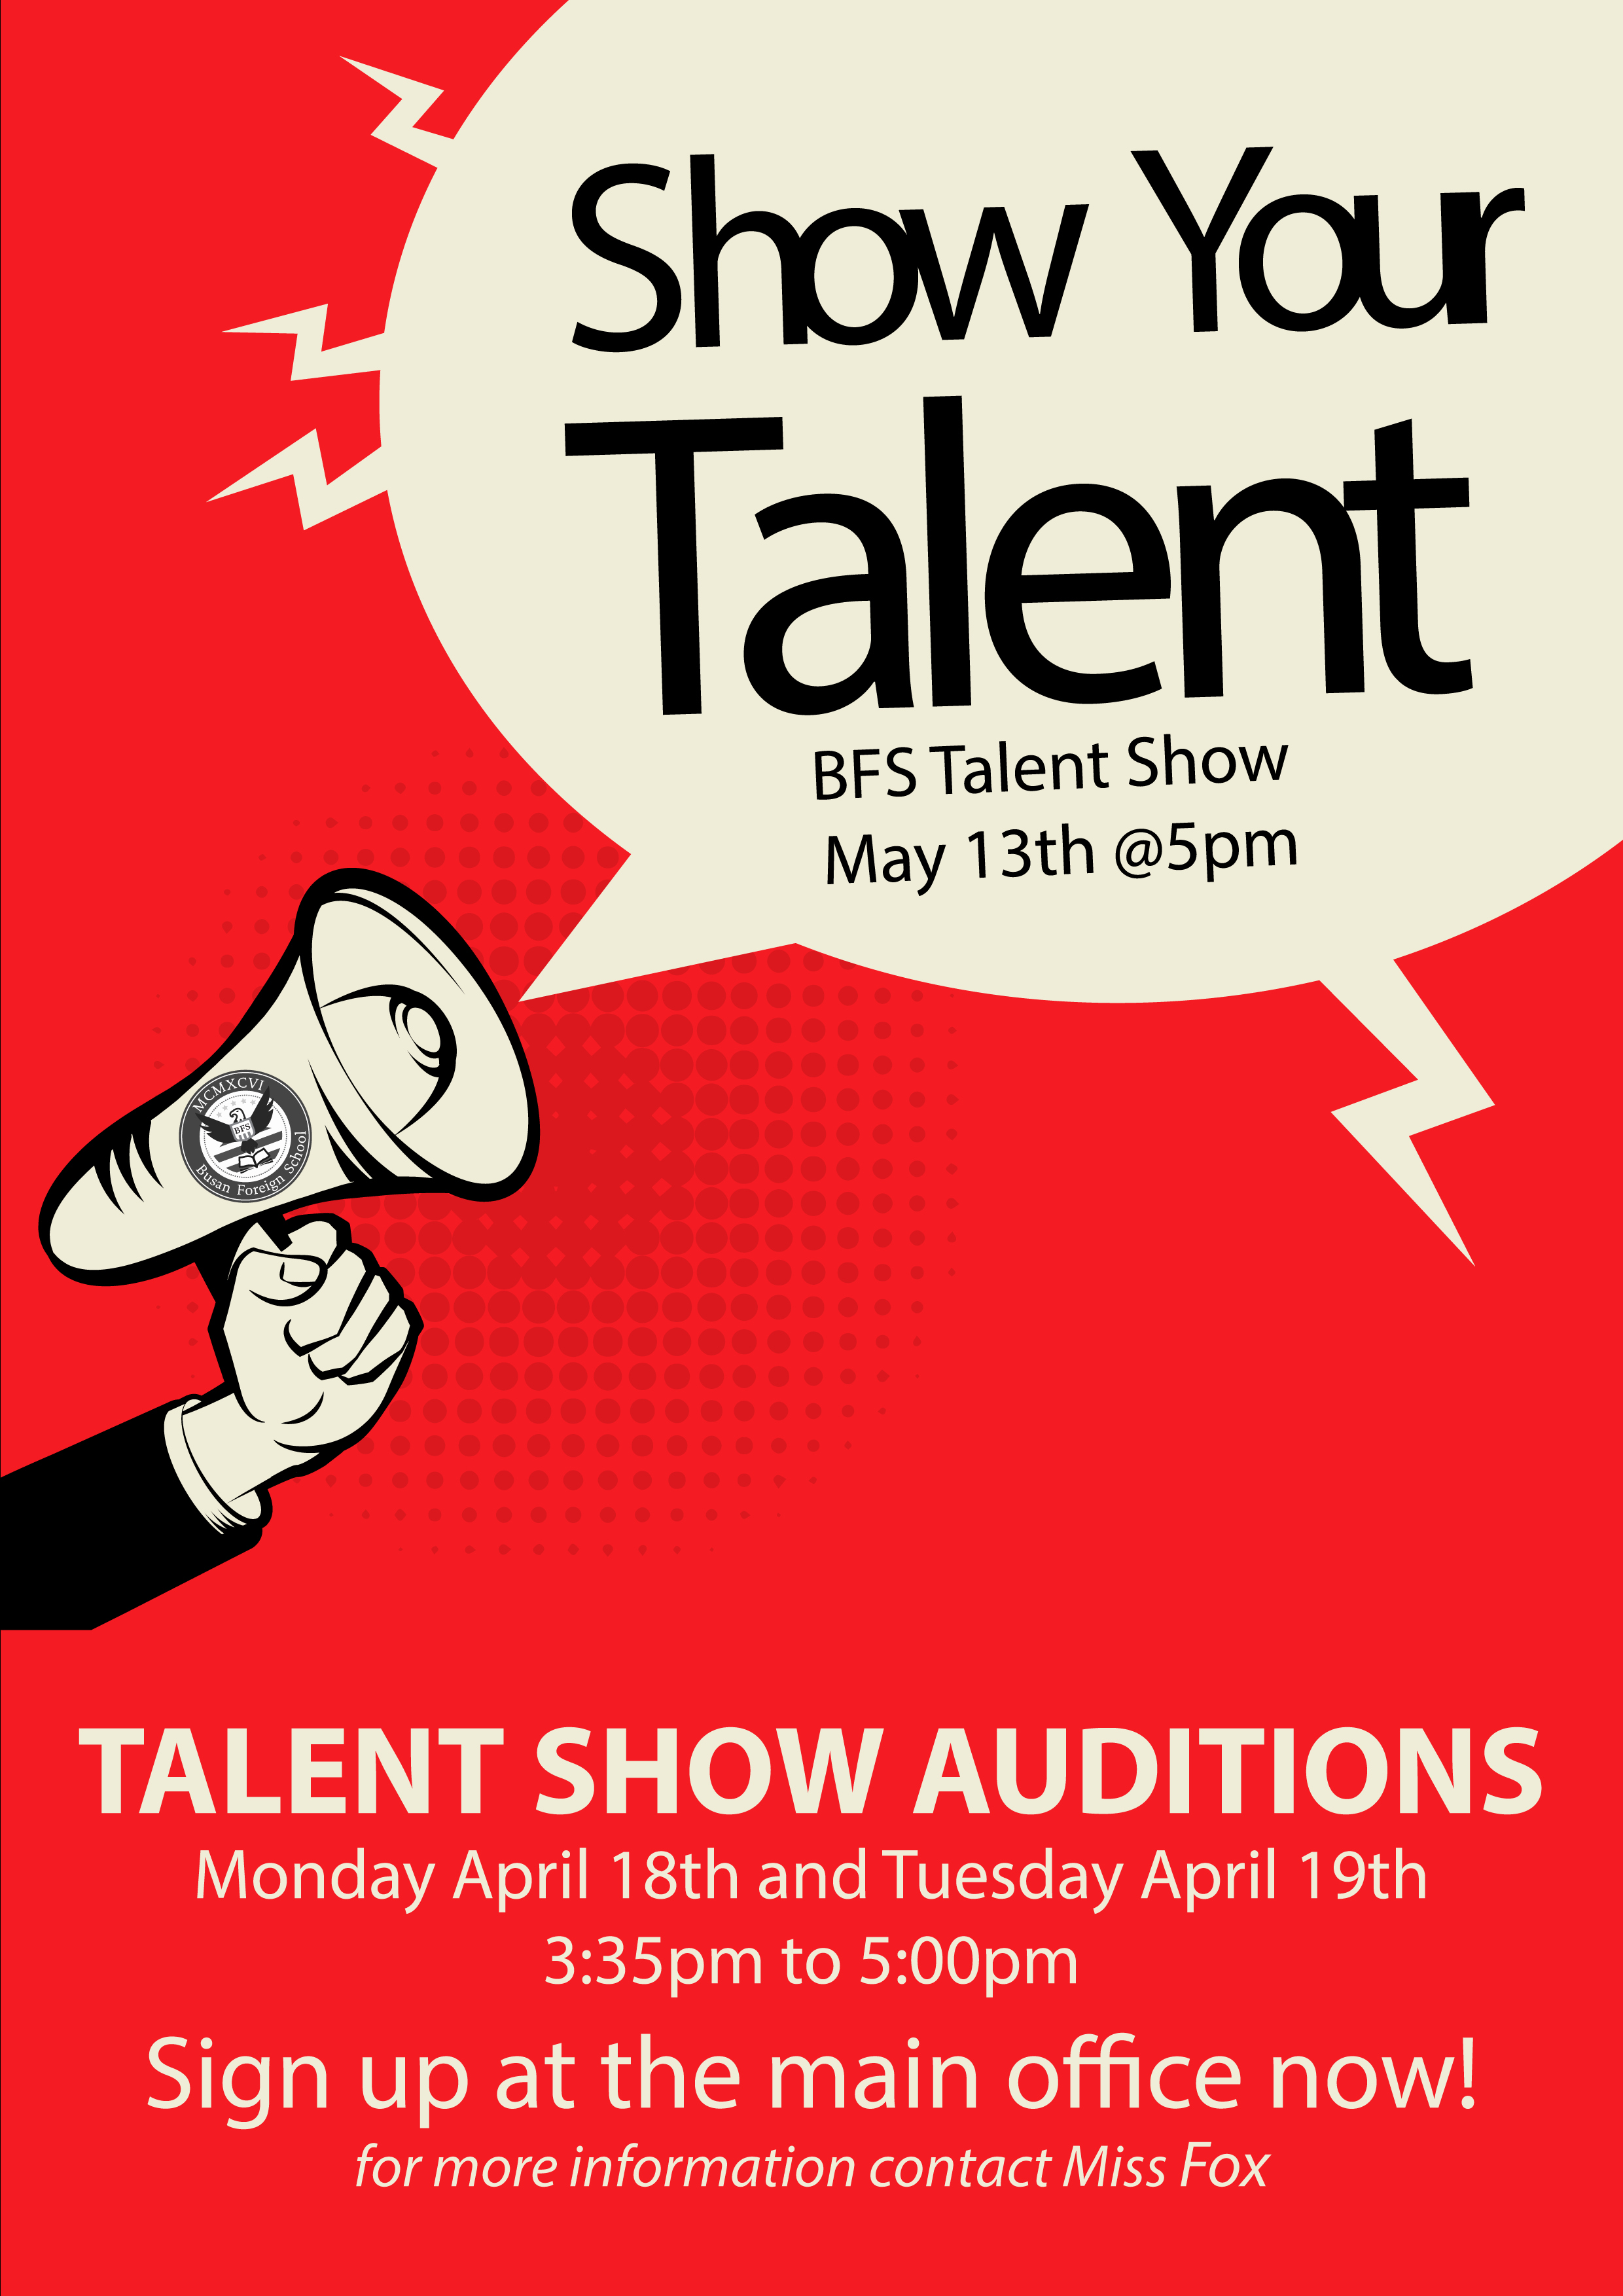 Free Talent Show Flyer Template Inspirational Talent Show Audition – Busan foreign School